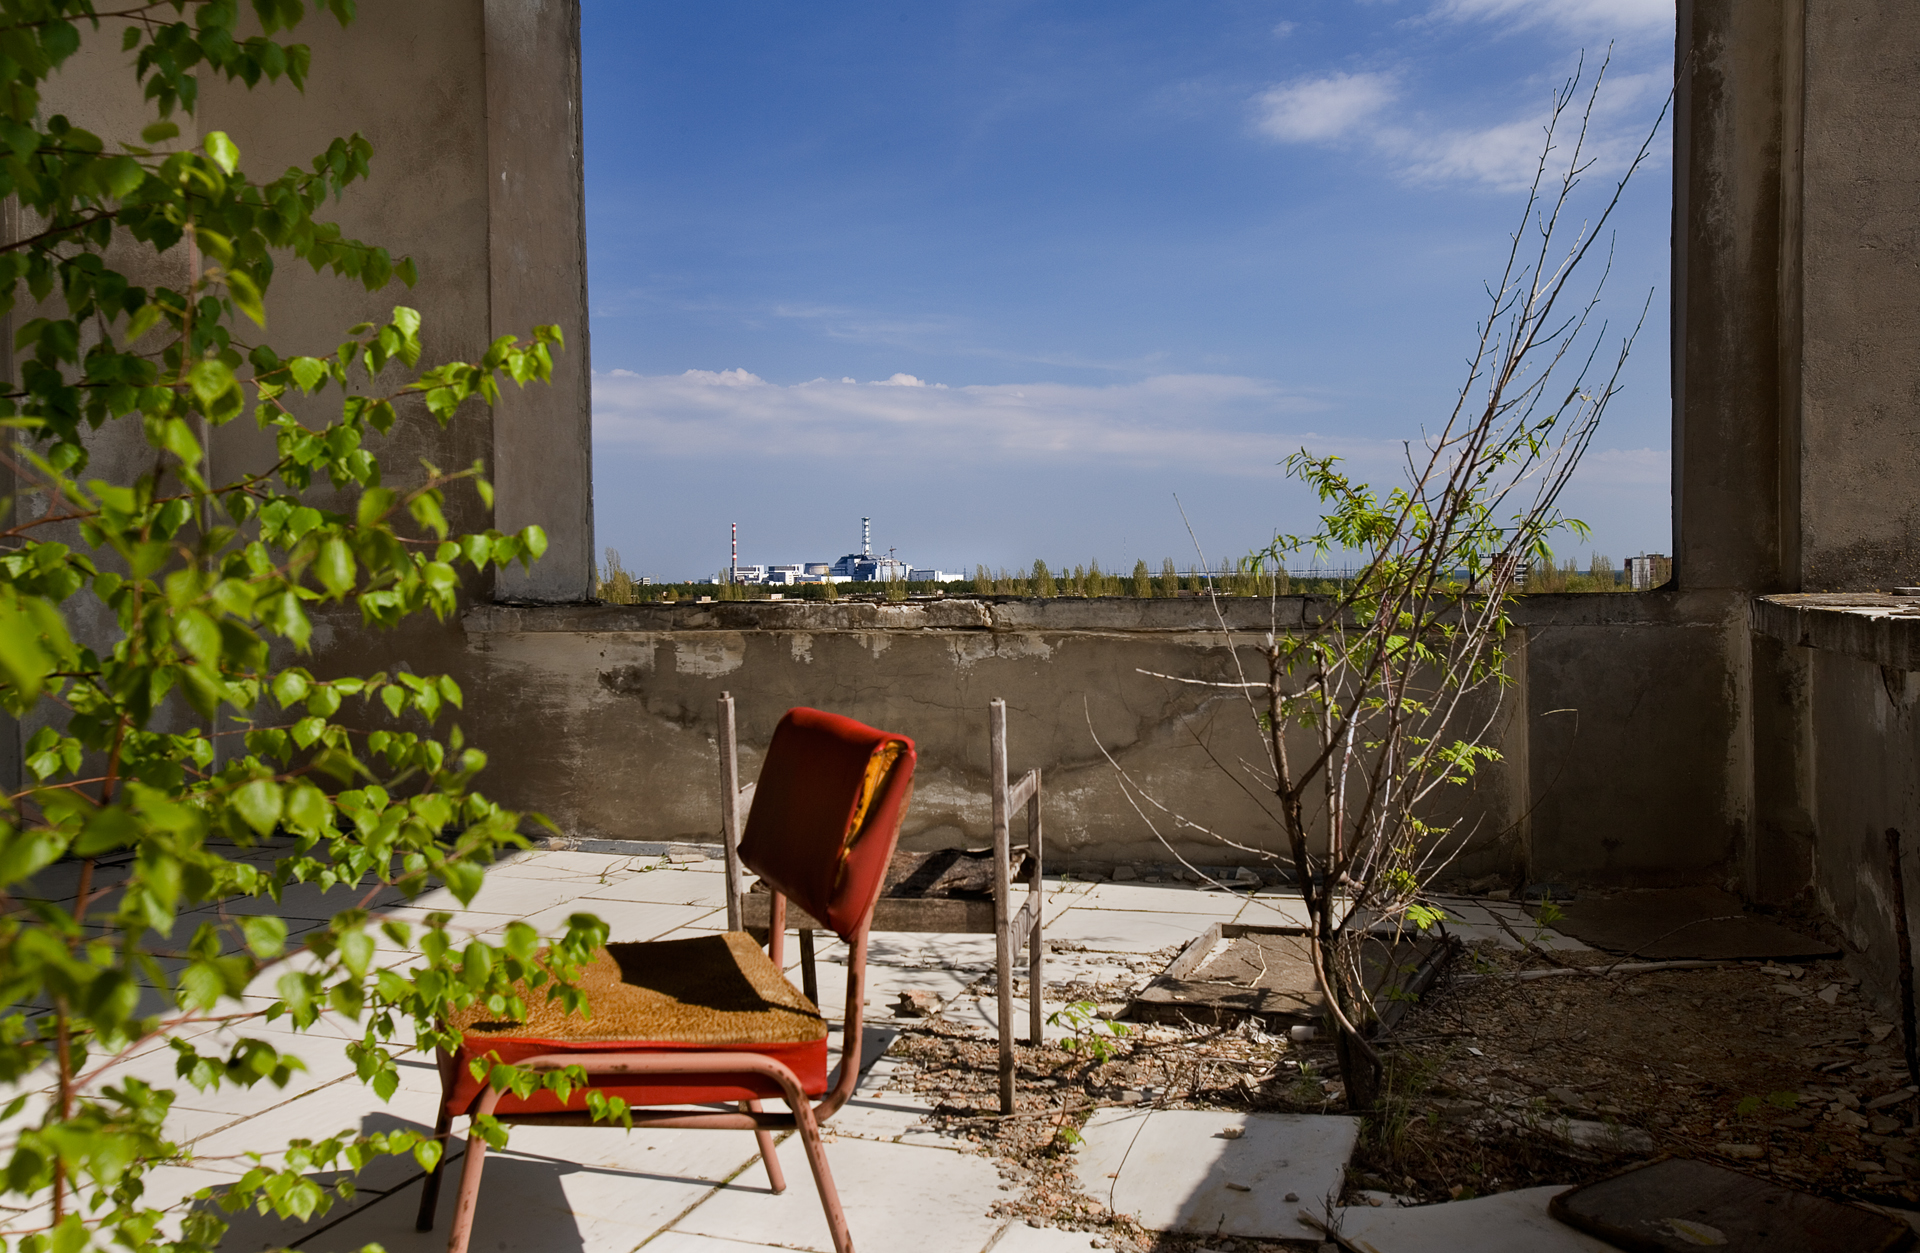 A rooftop view from the former Polissya Hotel in the center of Prypyat shows the proximity of the ill-fated reactor to this former town of 50,000 inhabitants.  Prypyat, Ukraine